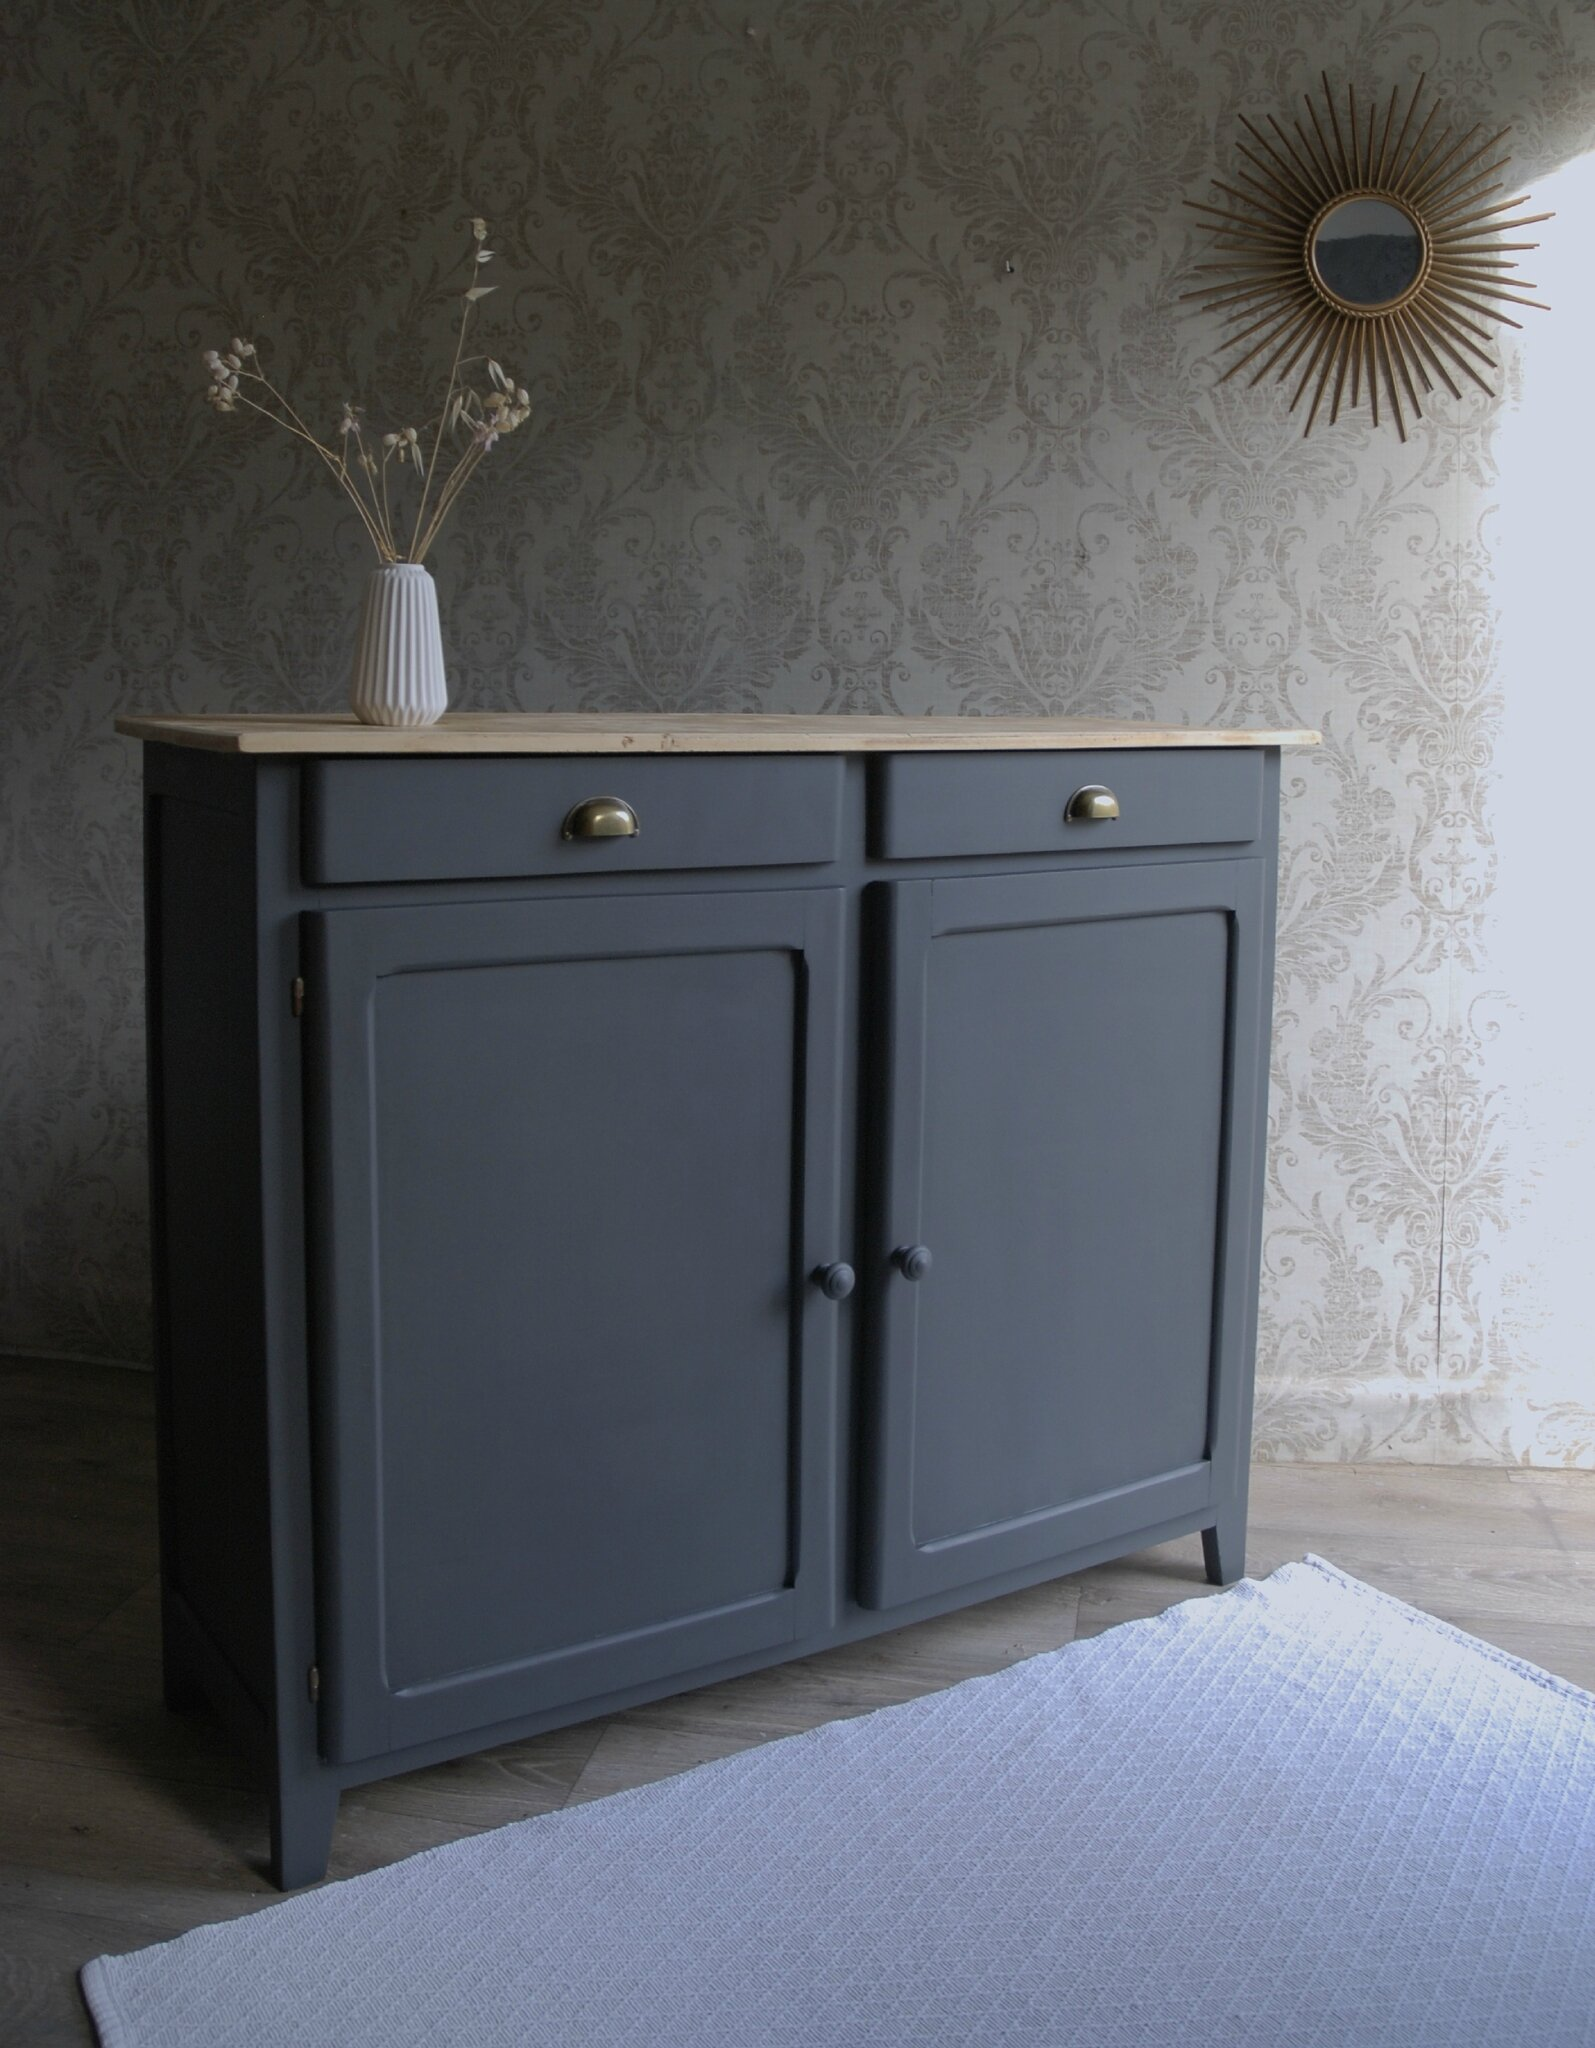 grand buffet gris charbon vendu atelier vintage. Black Bedroom Furniture Sets. Home Design Ideas